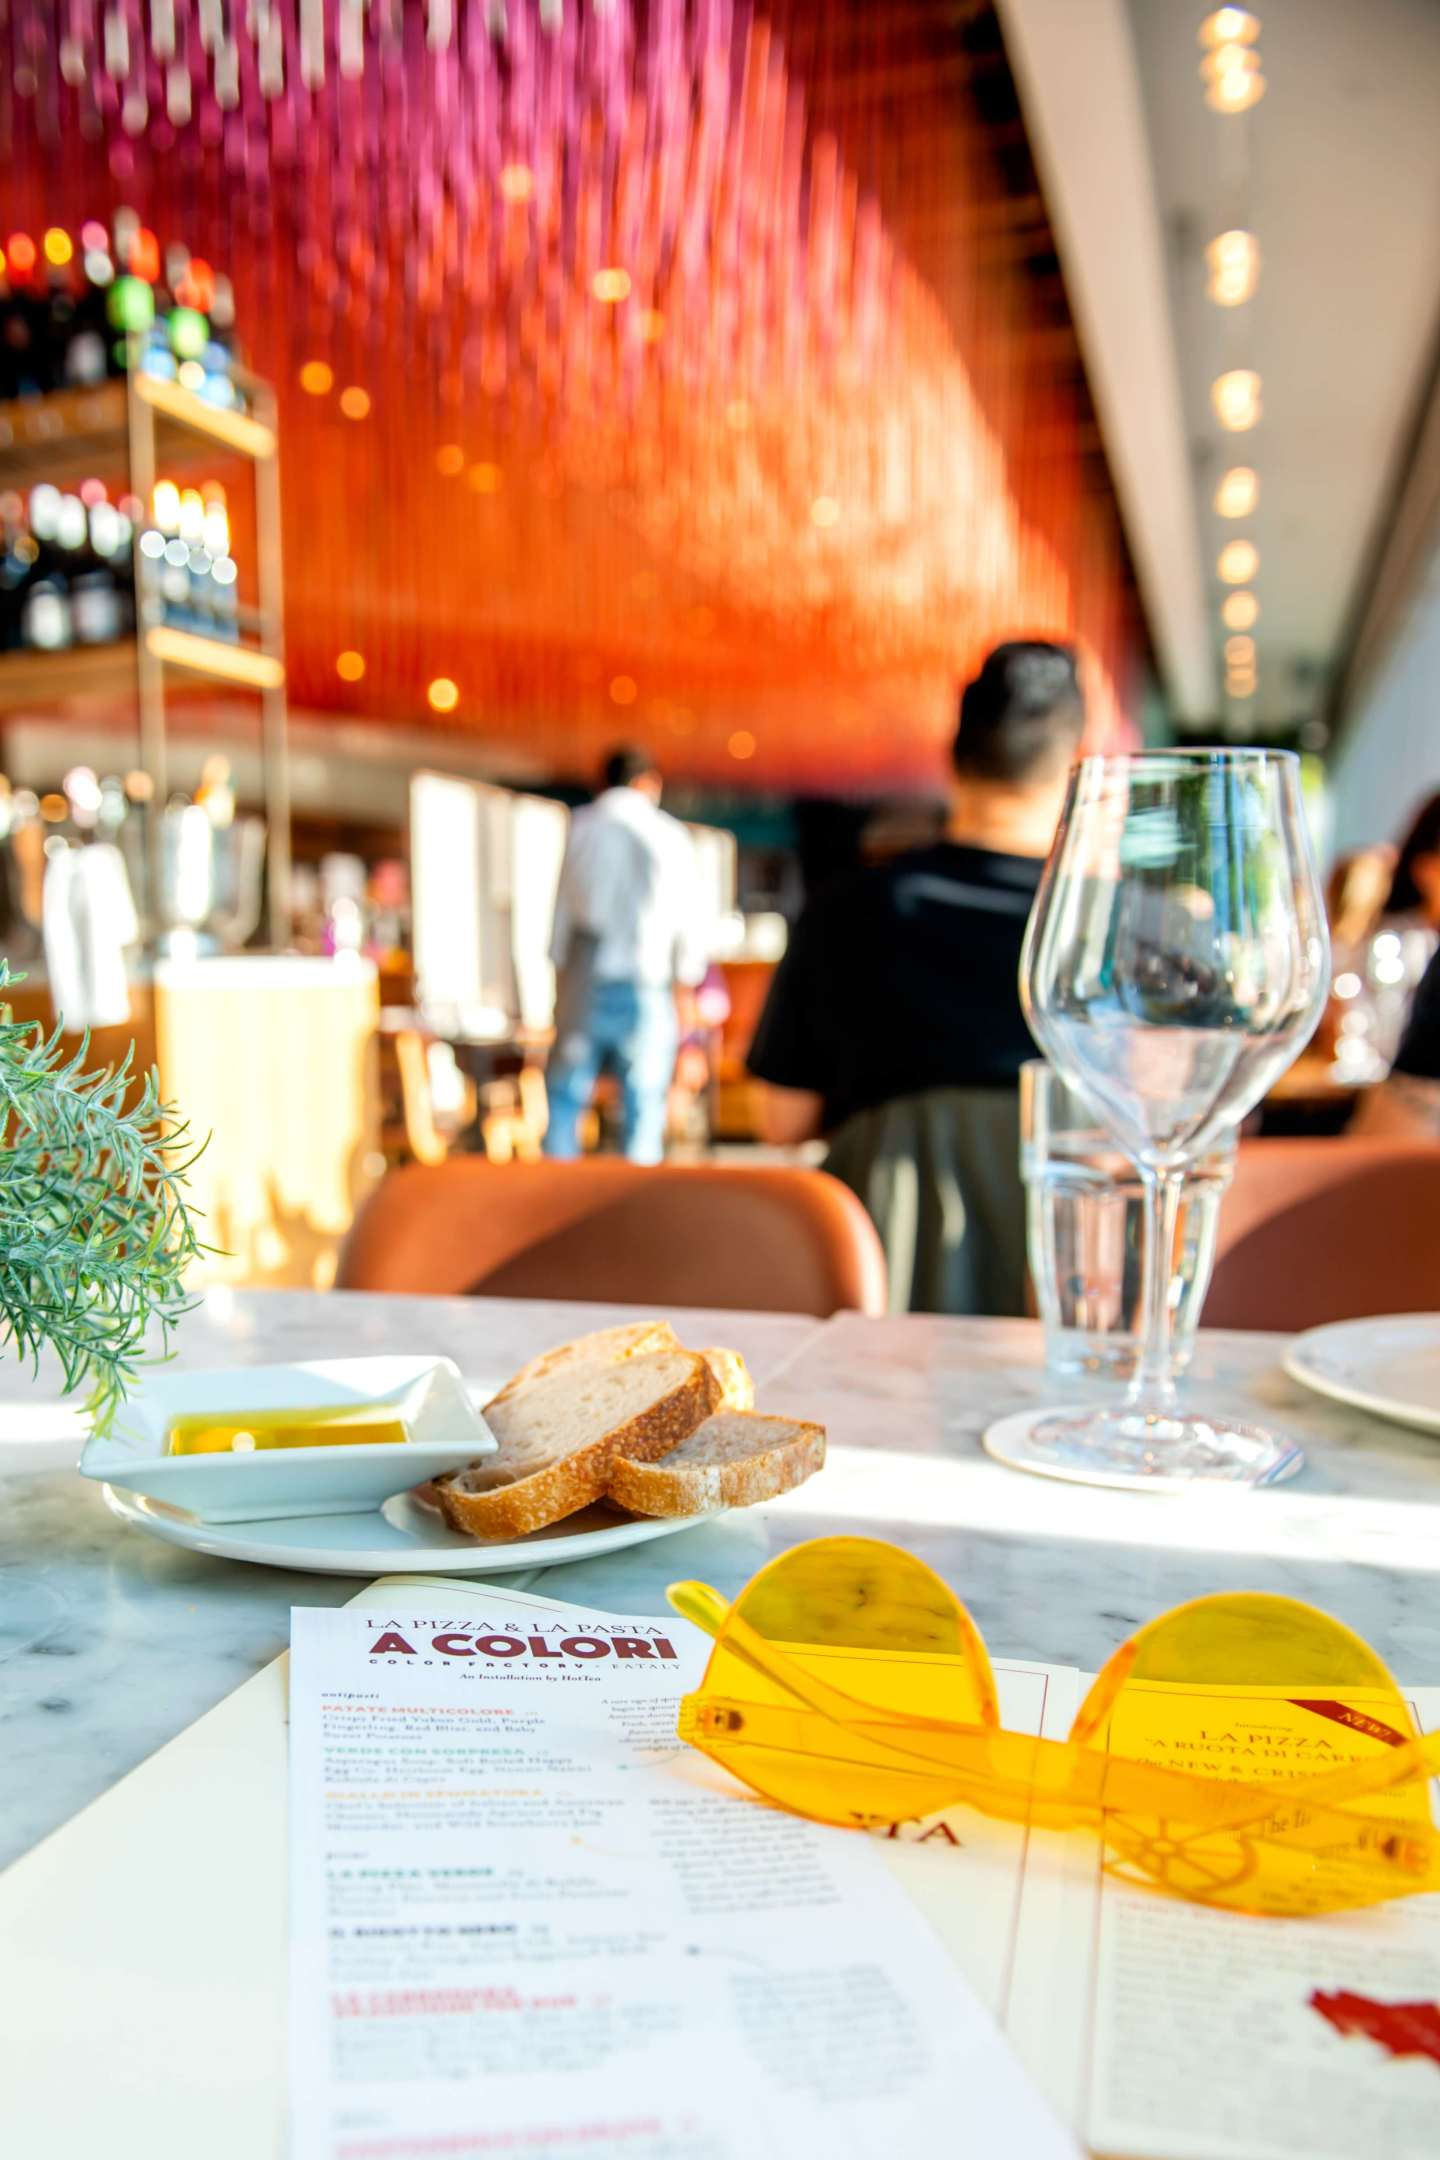 Eataly Downtown - A Colori - Menu, Eataly and Color Factory